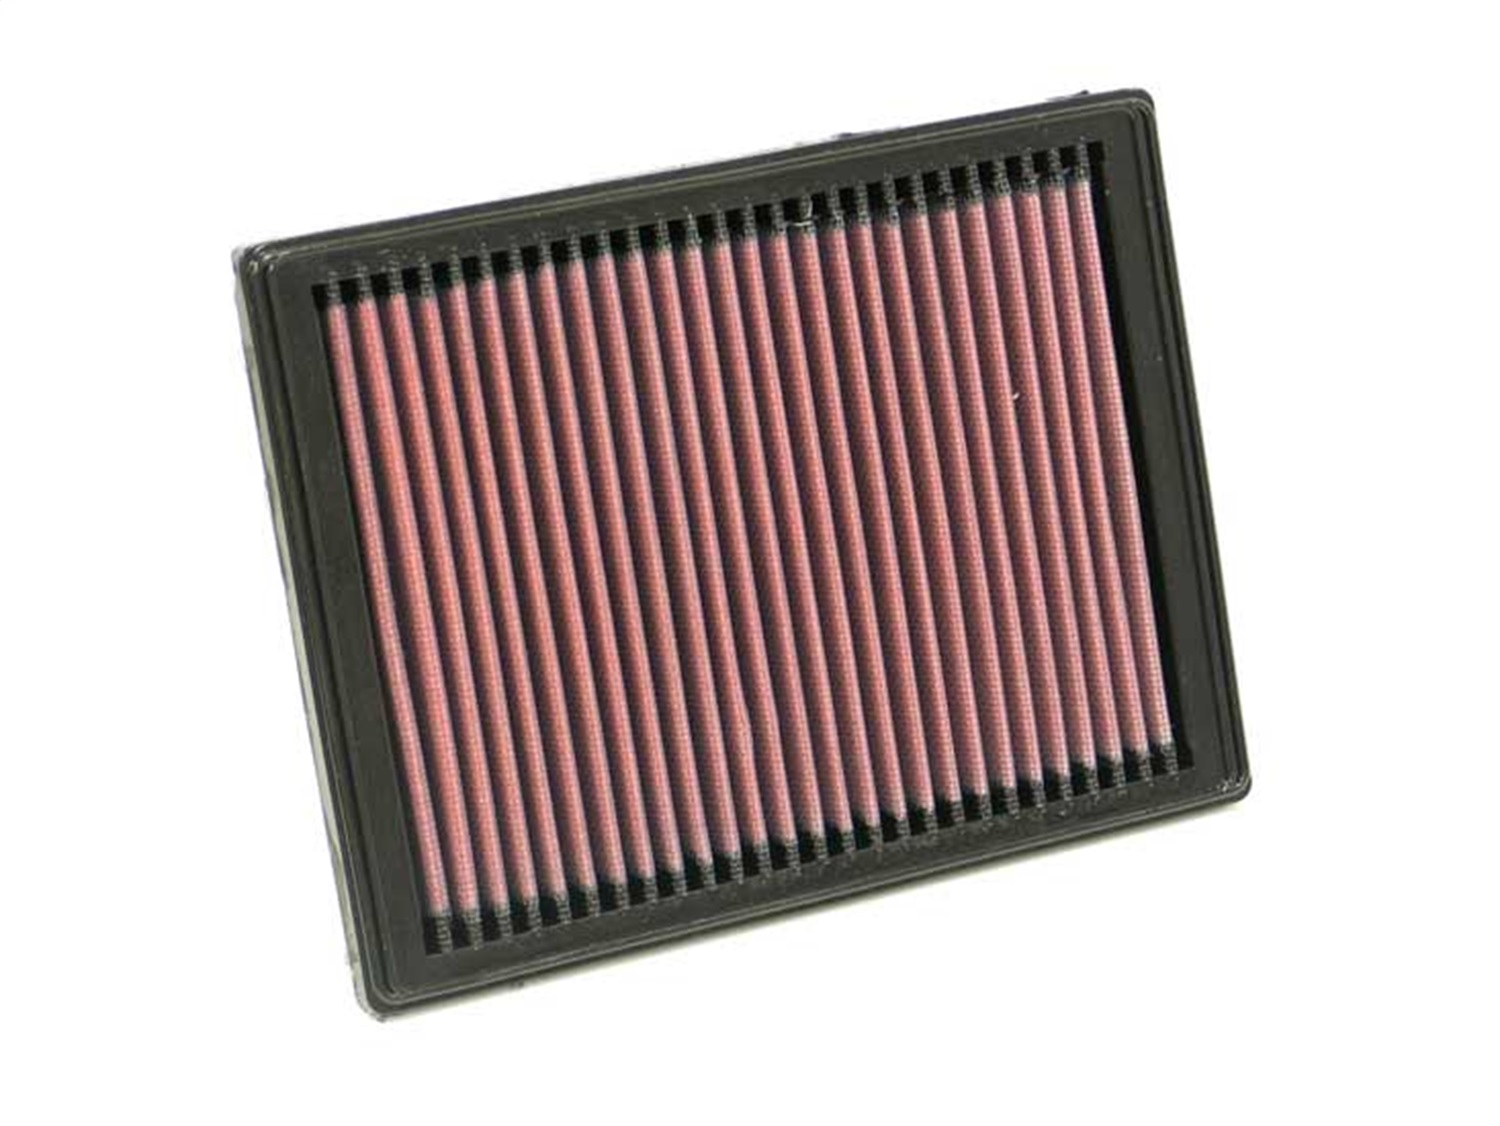 K&N Filters 33-2239 Air Filter Fits 02-08 Cooper 33-2239